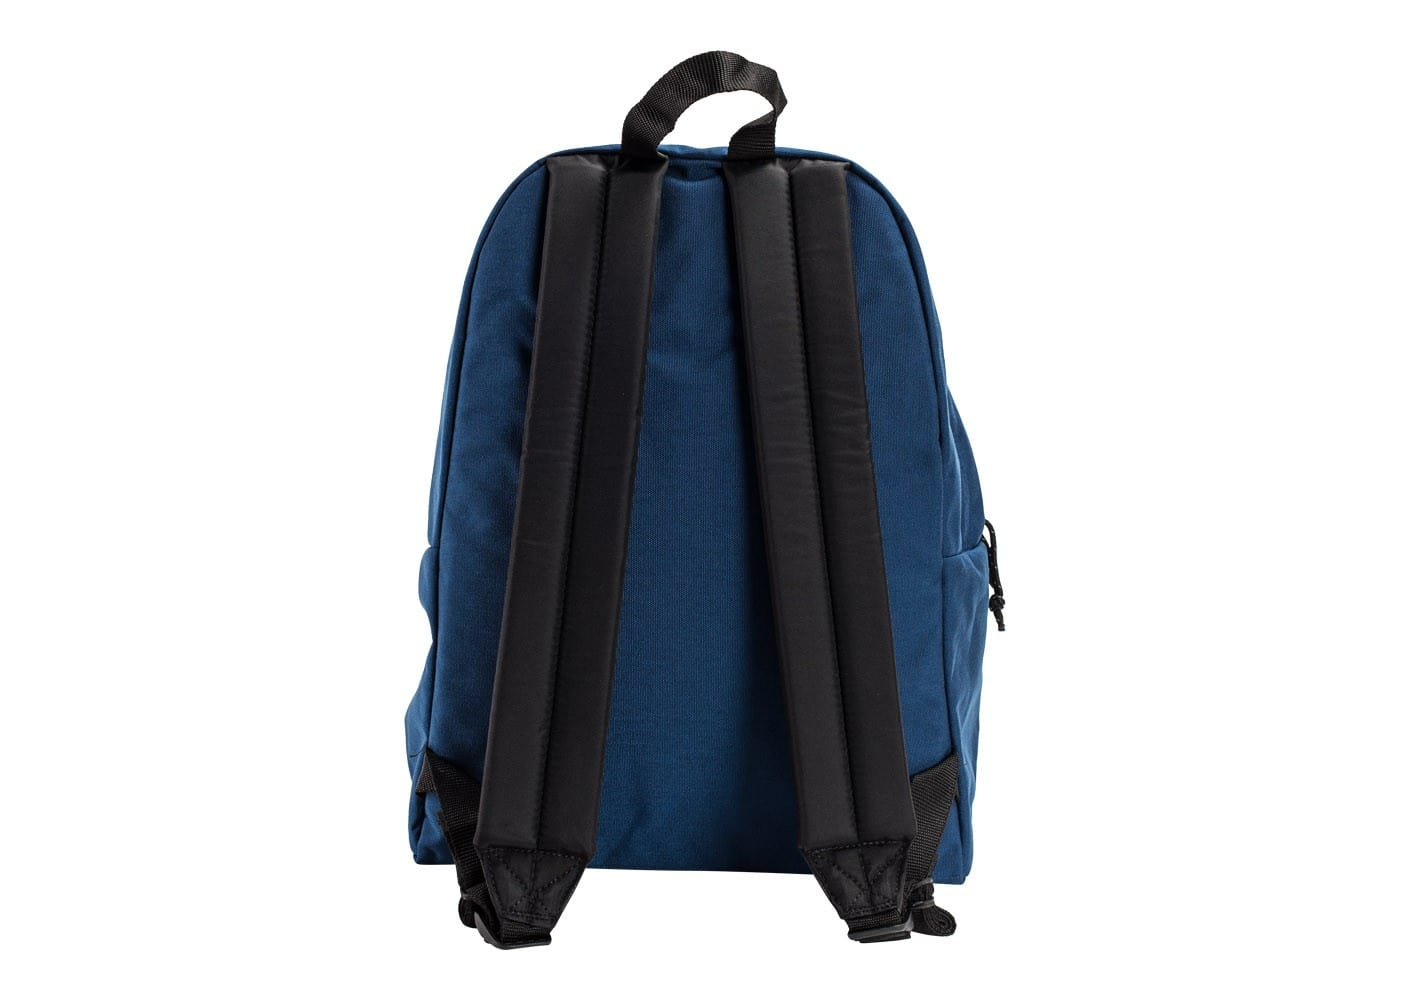 eastpak sac dos padded pak 39 r bleu fonc sacs sacoches chausport. Black Bedroom Furniture Sets. Home Design Ideas